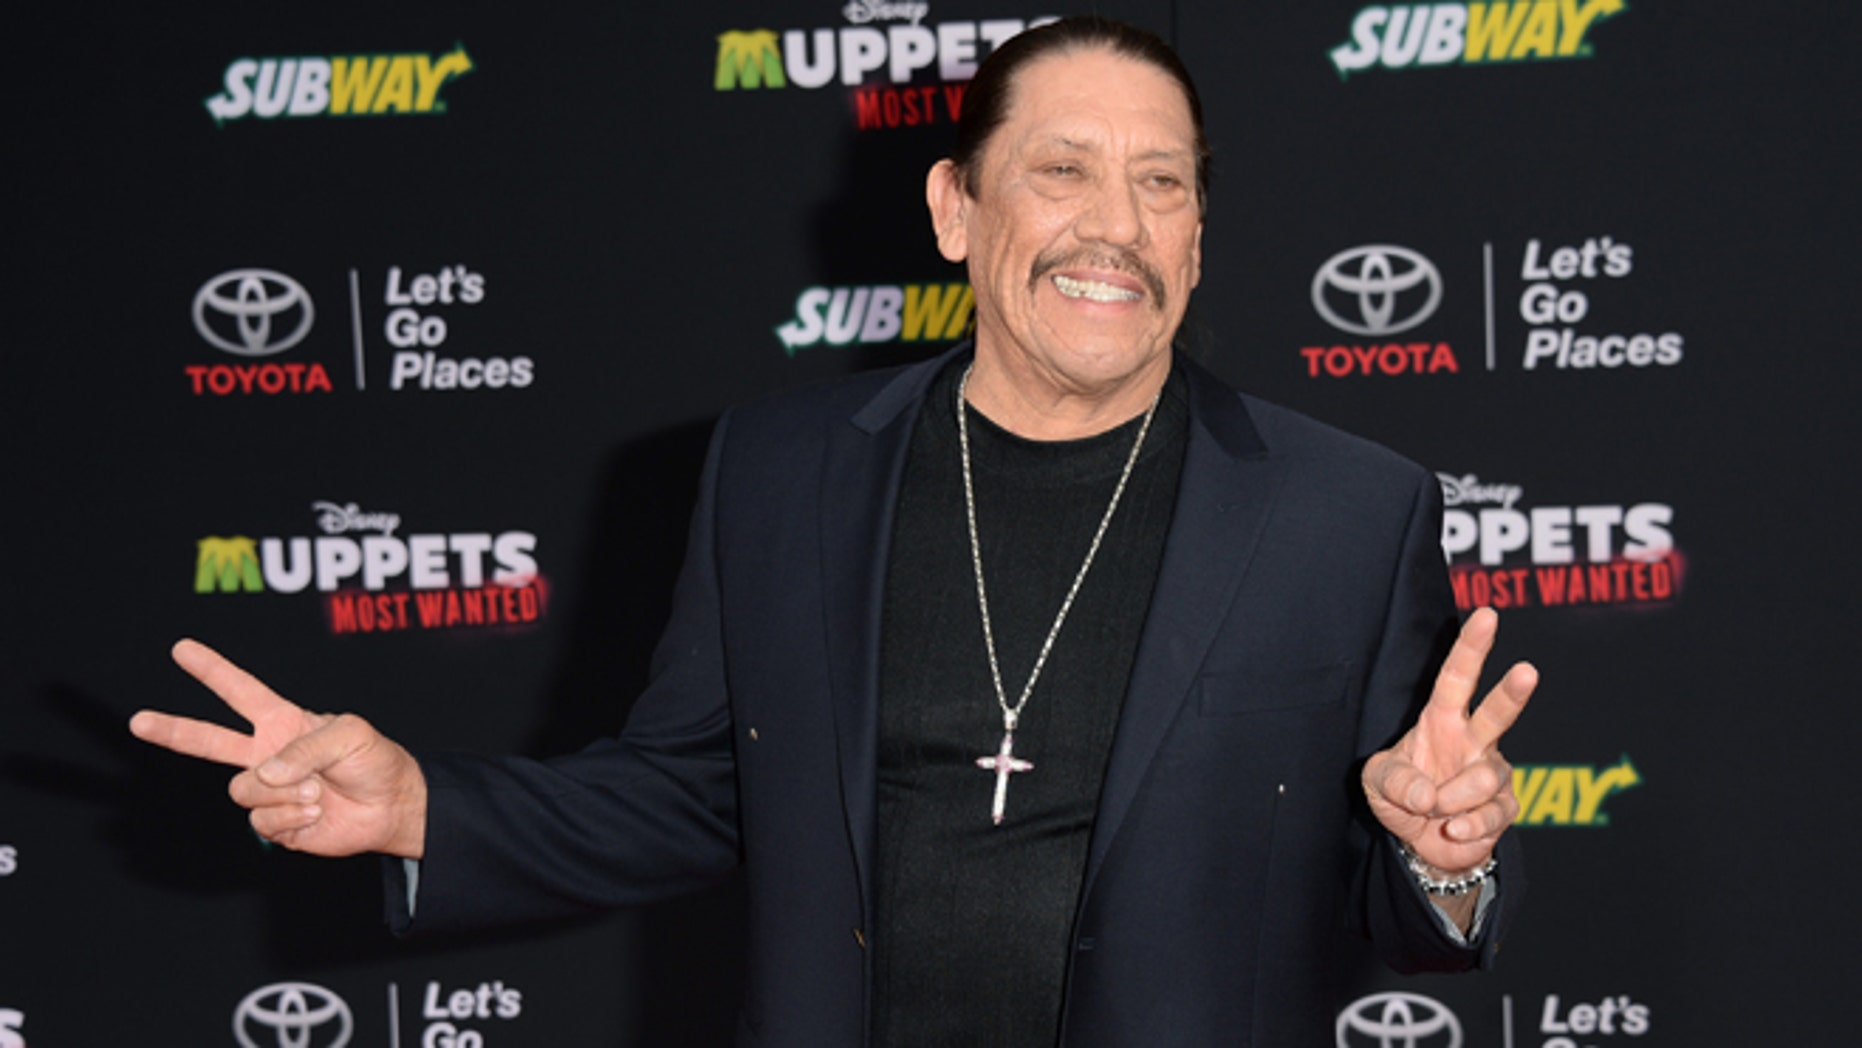 """HOLLYWOOD, CA - MARCH 11:  Actor Danny Trejo attends the premiere of Disney's """"Muppets Most Wanted"""" at the El Capitan Theatre on March 11, 2014 in Hollywood, California.  (Photo by Jason Merritt/Getty Images)"""